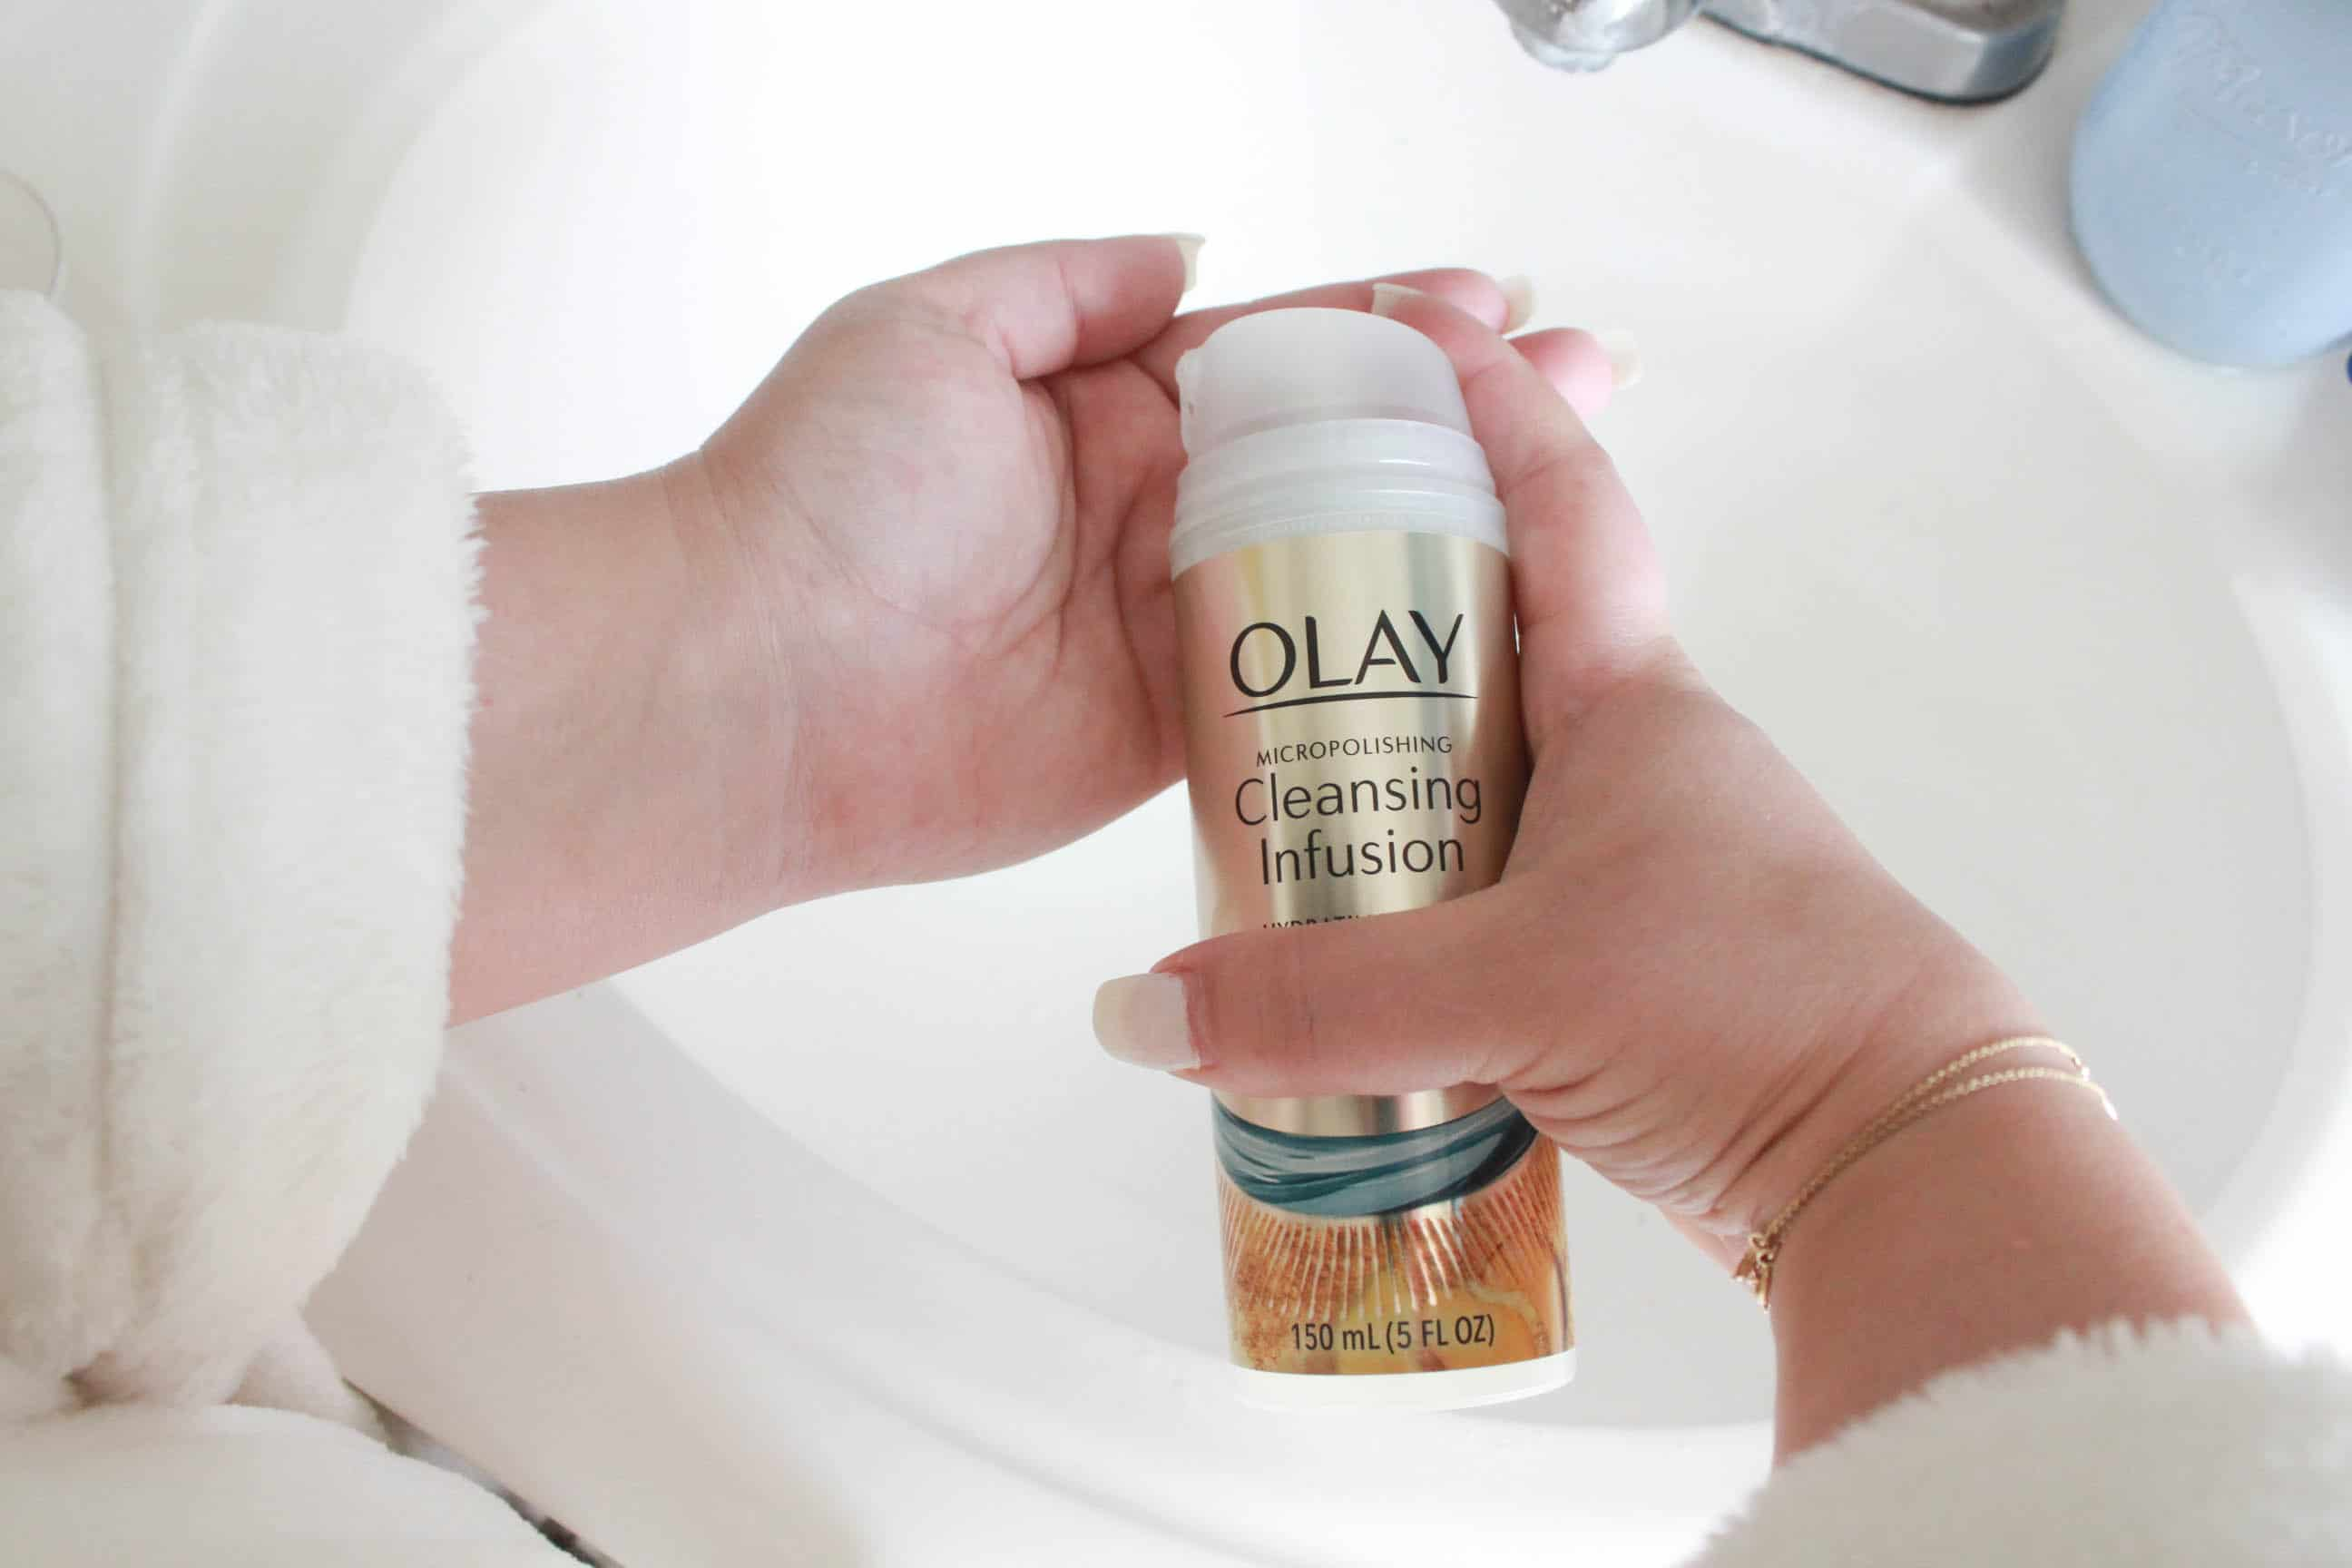 missyonmadison, missyonmadison blog, missyonmadison instagram, olay, olay skincare, olay infusions, olay cleansing infusions, bloglovin, la blogger, beauty blogger, beauty blog, beauty tips, skincare routine, skincare tutorial, olay glow up, glow up,